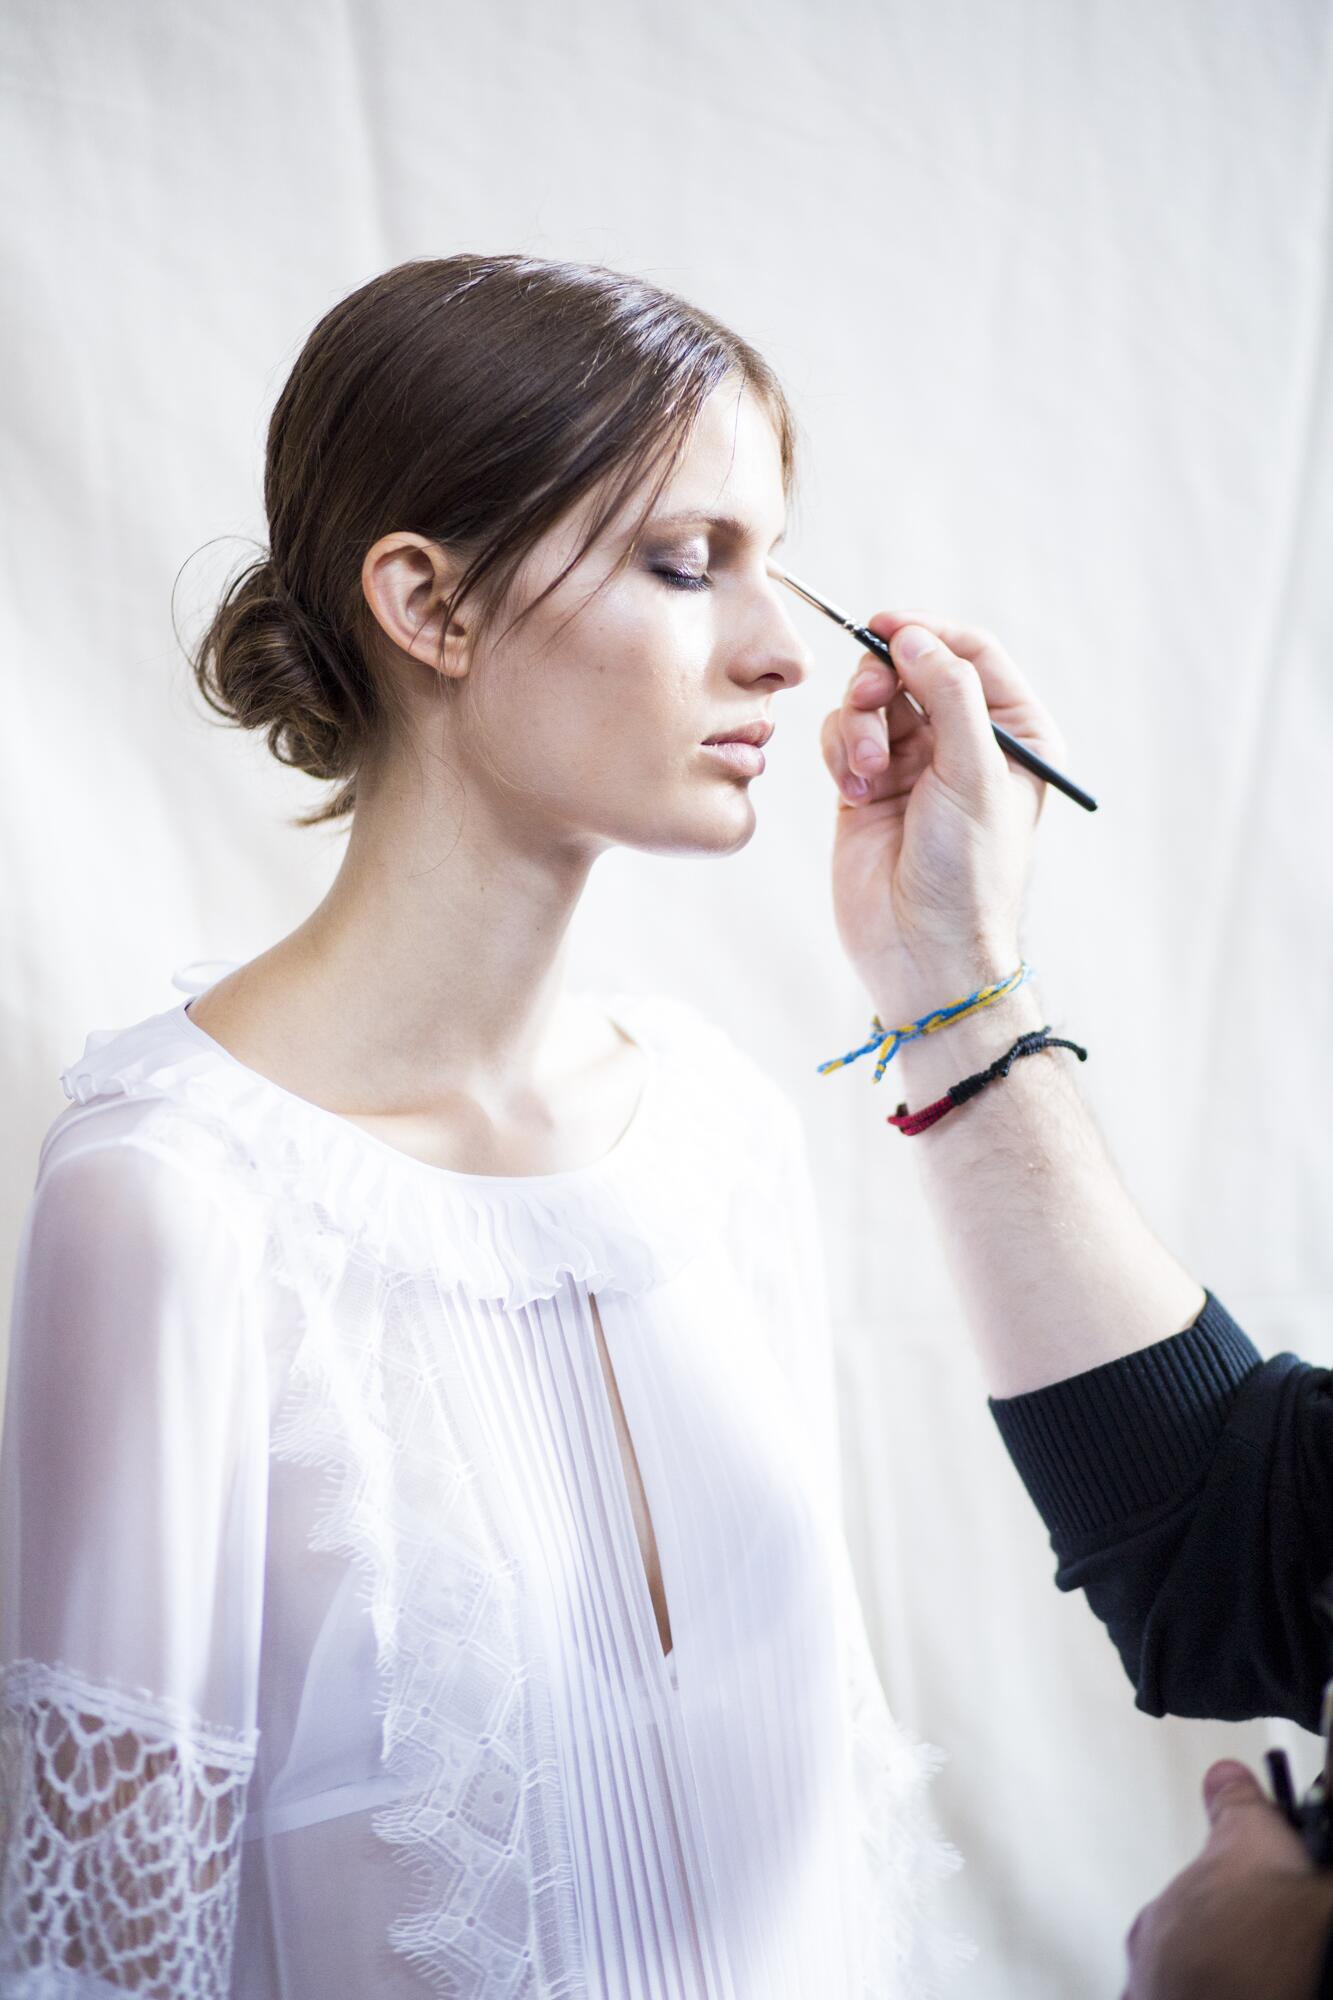 Make Up Backstage Alberta Ferretti Milan Fashion Week